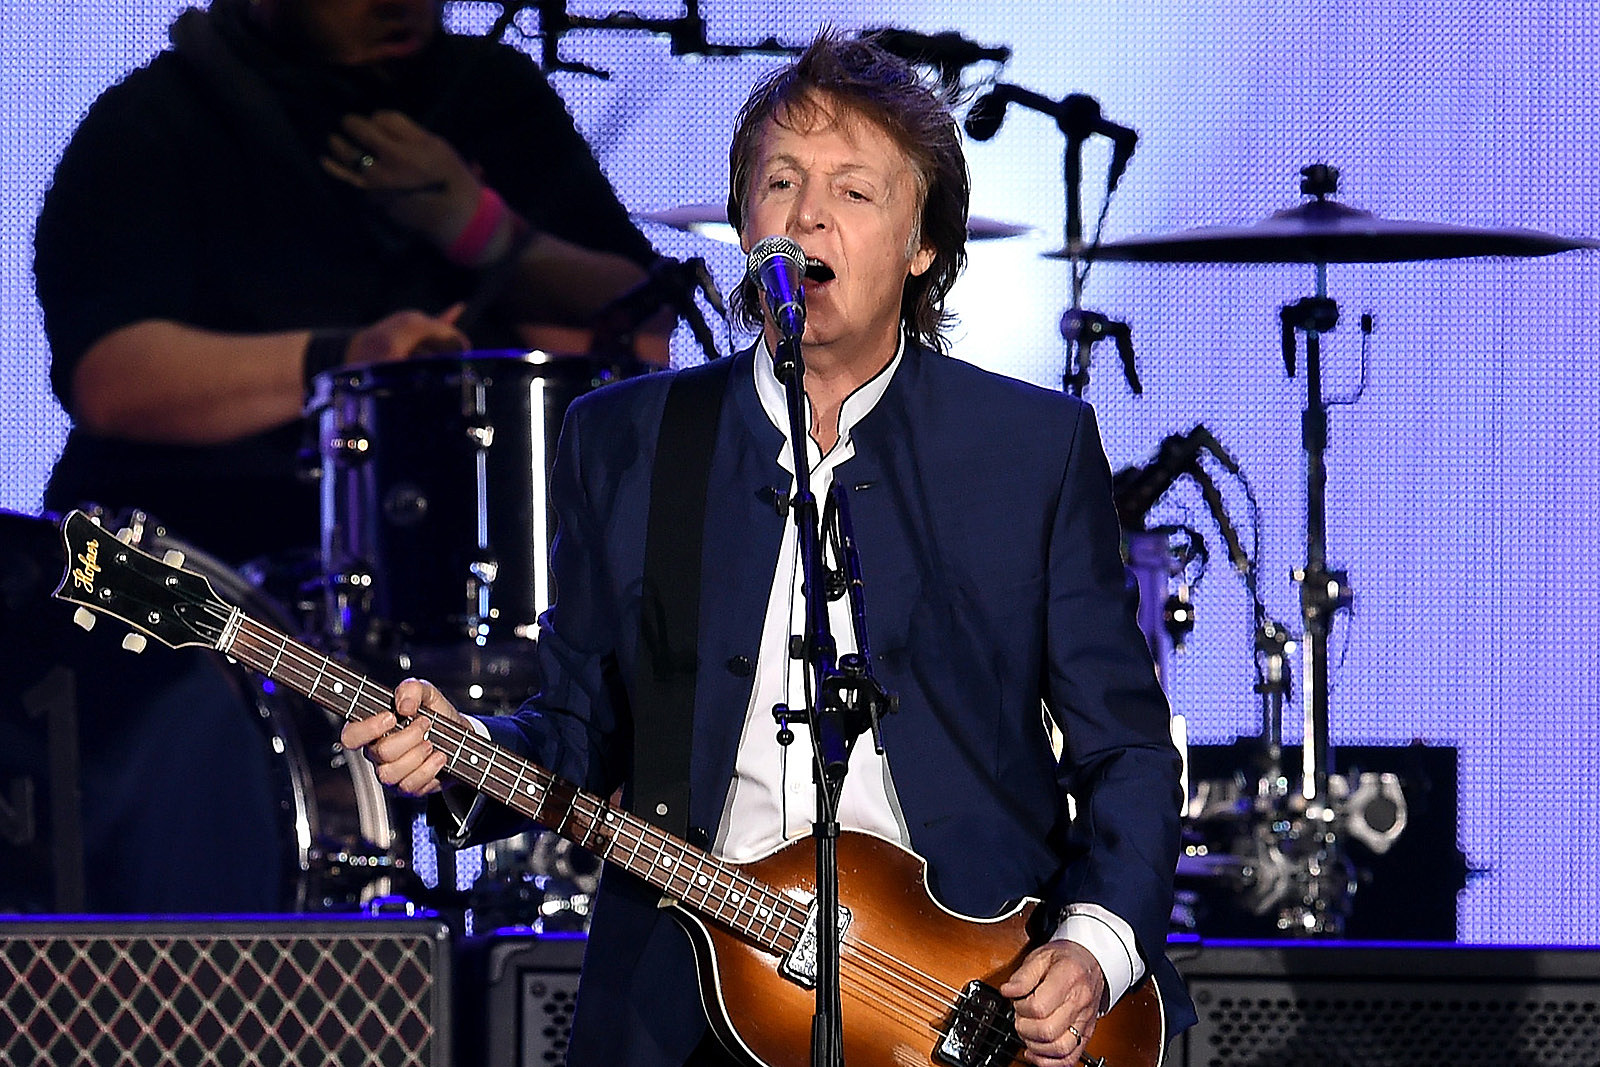 Paul McCartney Kicks Off 'Freshen Up' Tour in Canada: Set List and Video